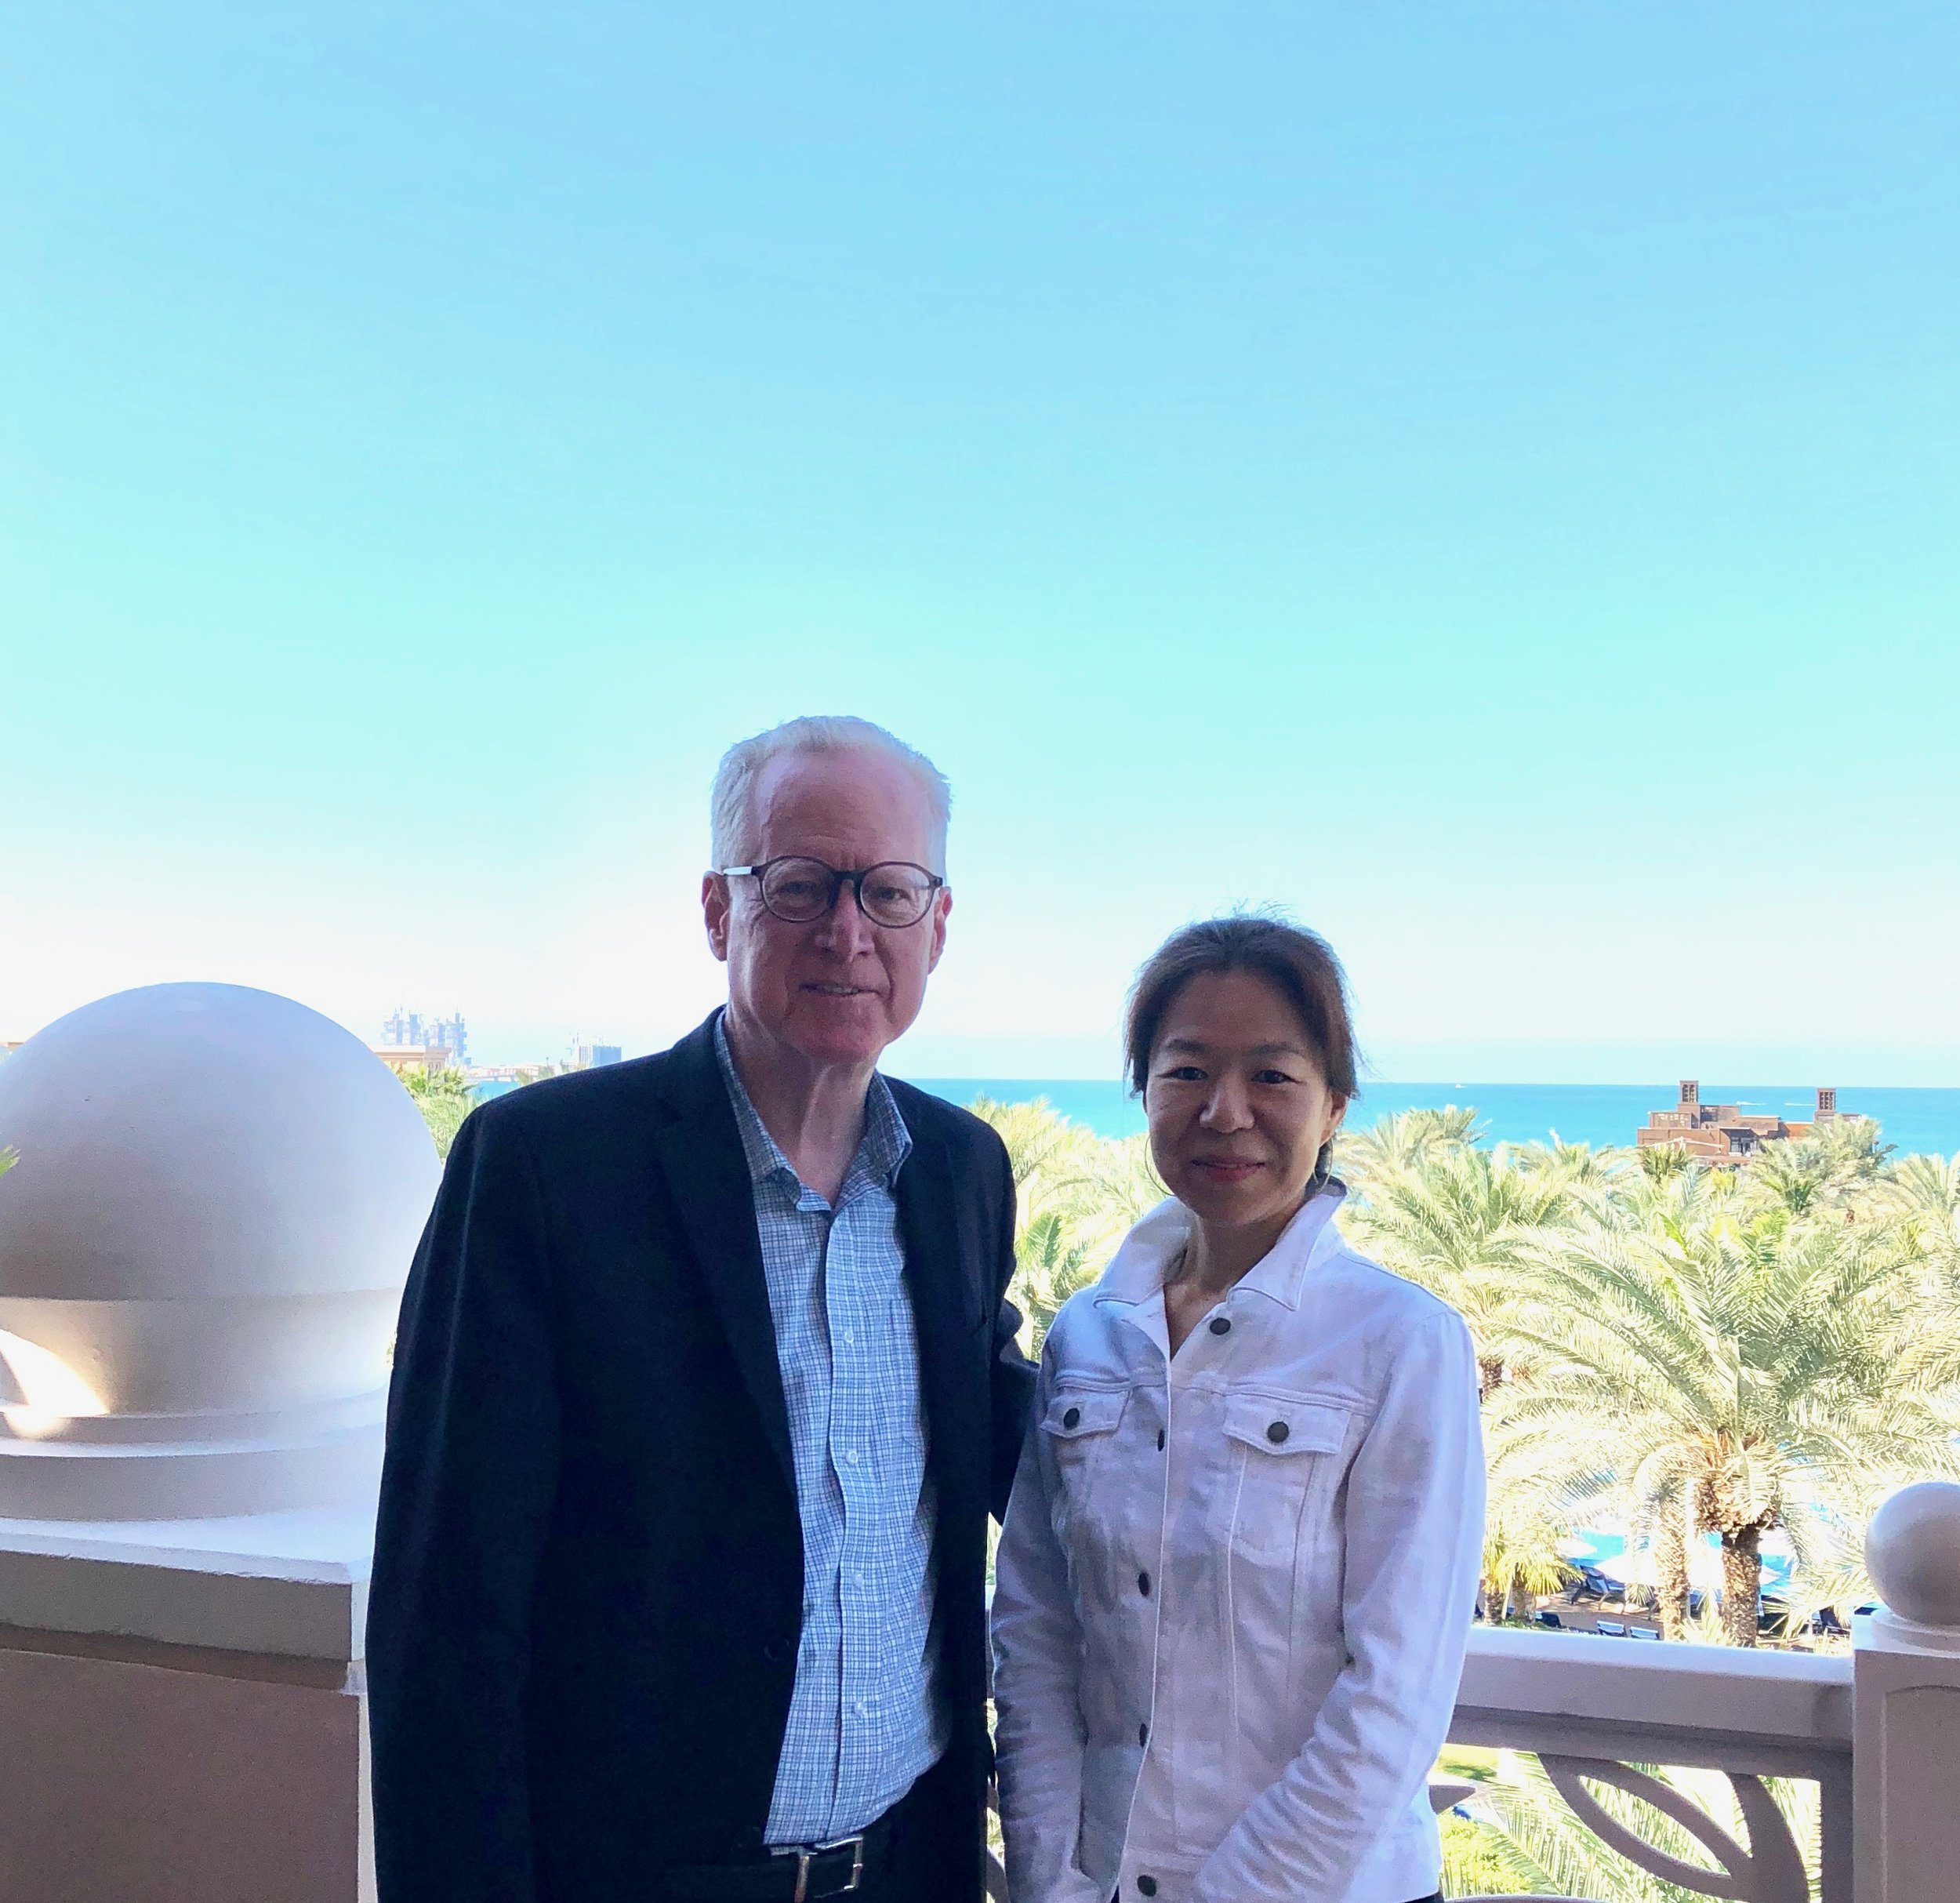 Edward Esko with his wife Naomi Ichikawa in Dubai.